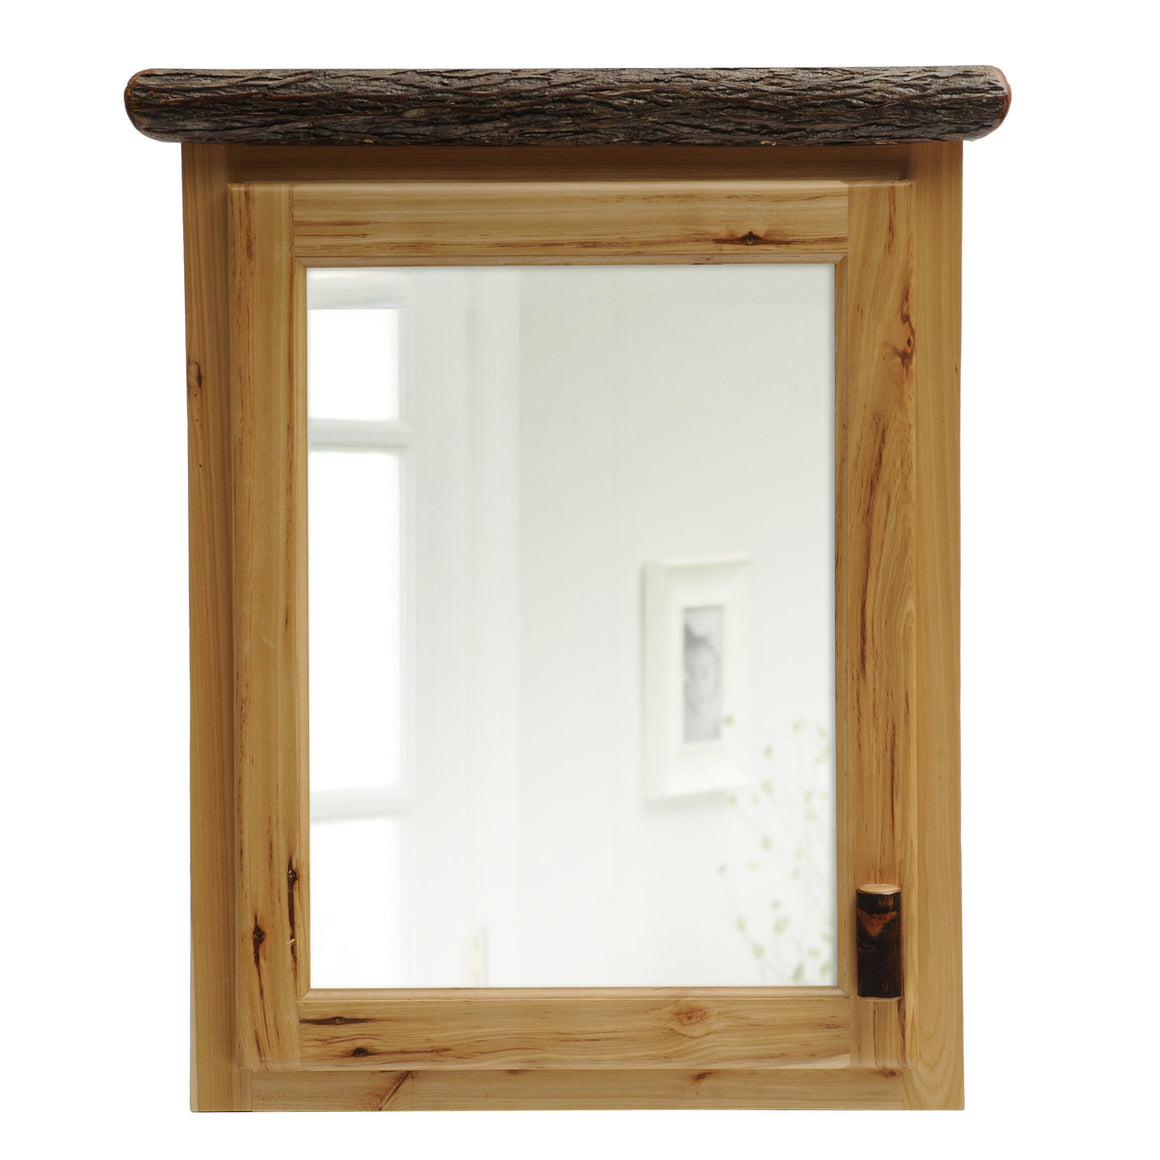 Natural Hickory Log Medicine Cabinet- 27-33 Inch - Hinged Left and Hinge Right - Rustic Deco Incorporated